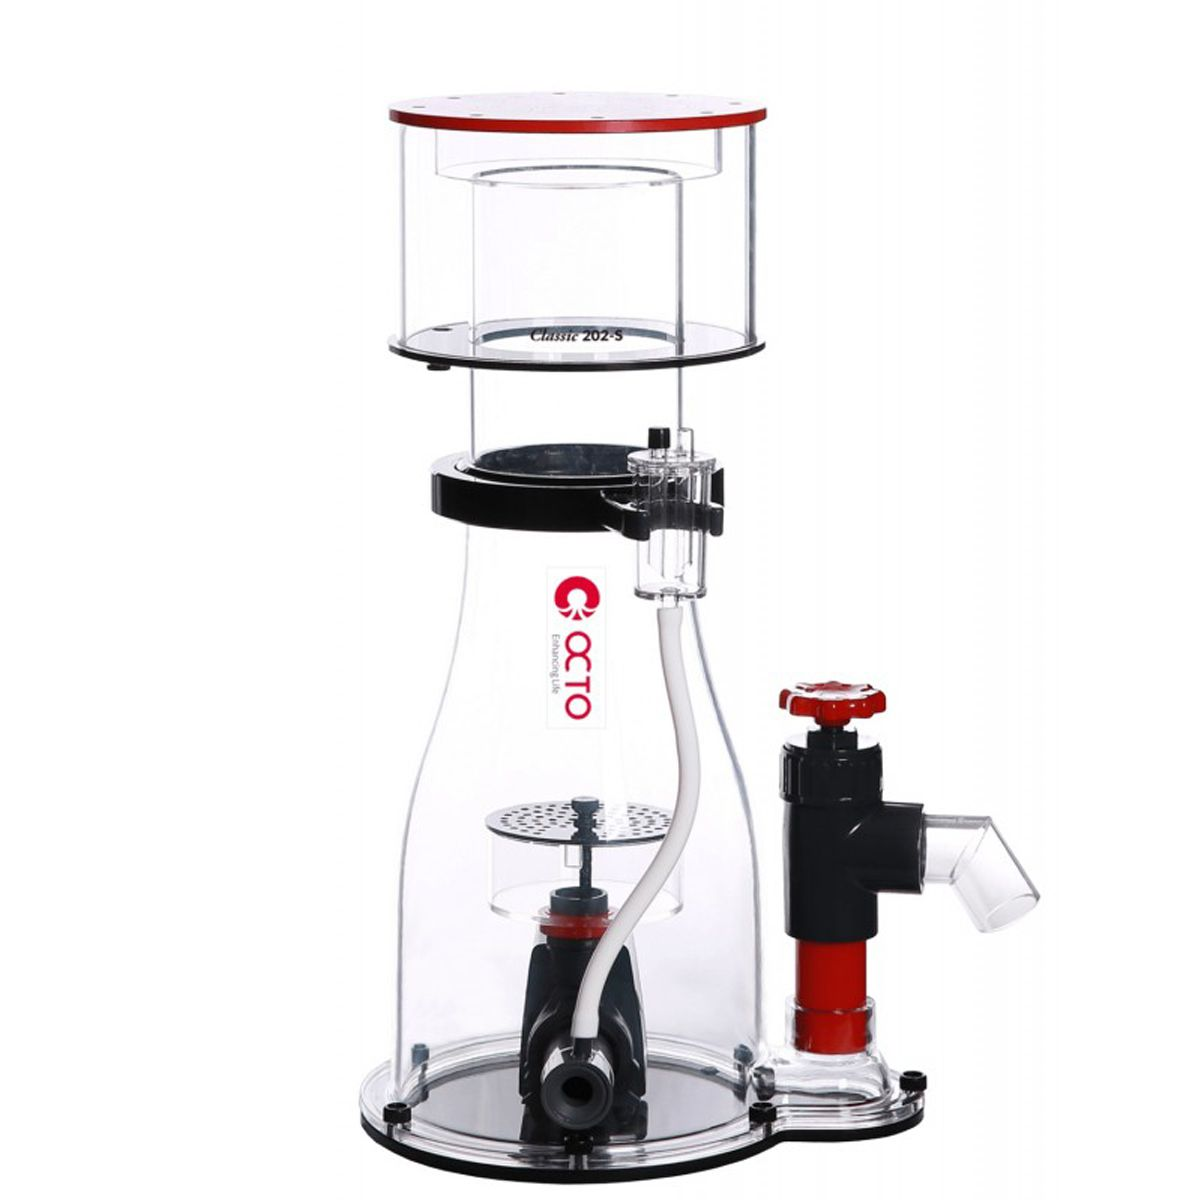 Reef Octopus Skimmer Classic 202-s Space Saving 1000l